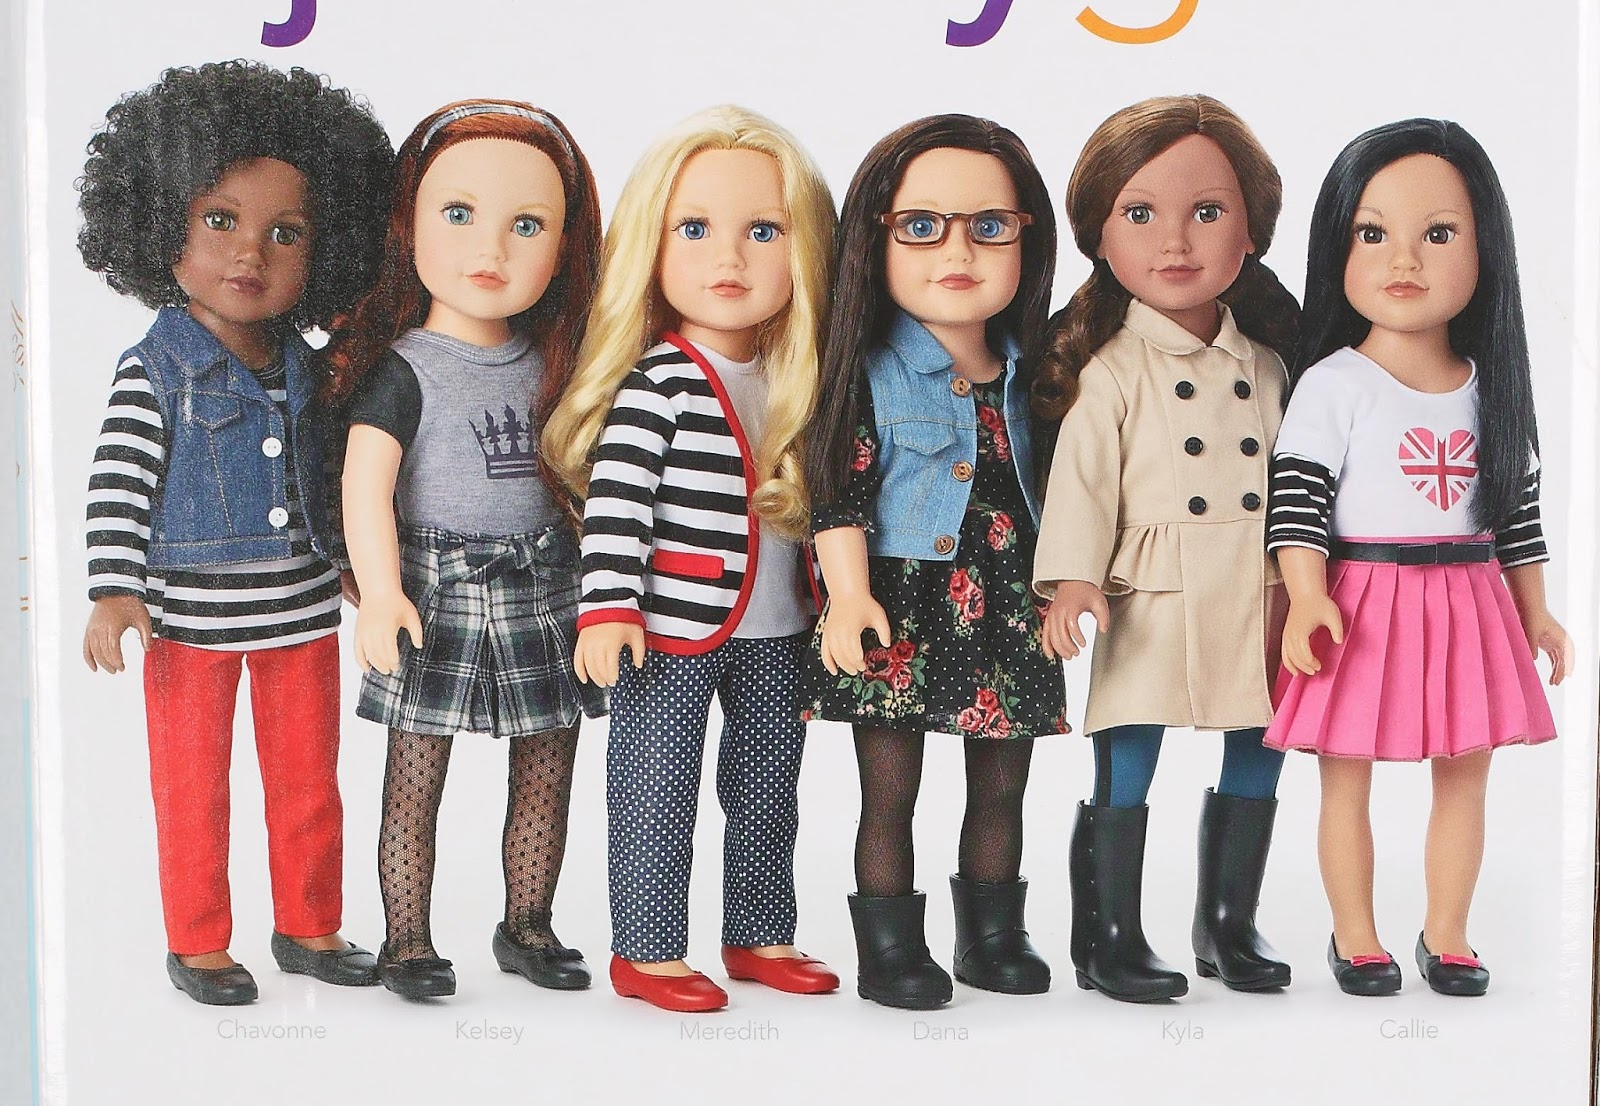 Toys R Us Journey Girls : My journey girls dolls adventures: journey girls new outfits released